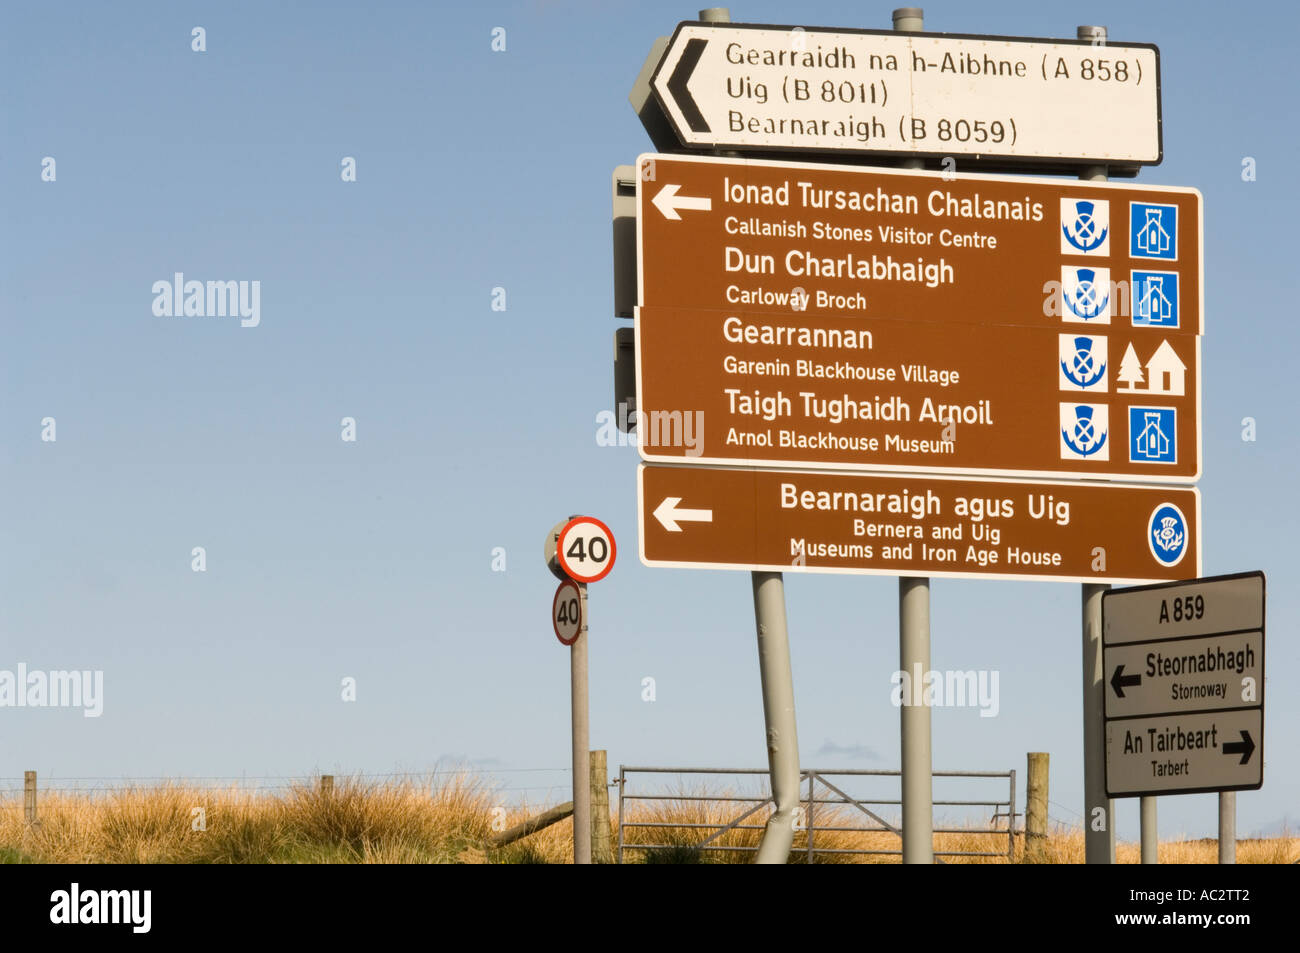 Road directions on the Isle of Lewis, Outer Hebrides, Western Isles, Scotland, UK - Stock Image